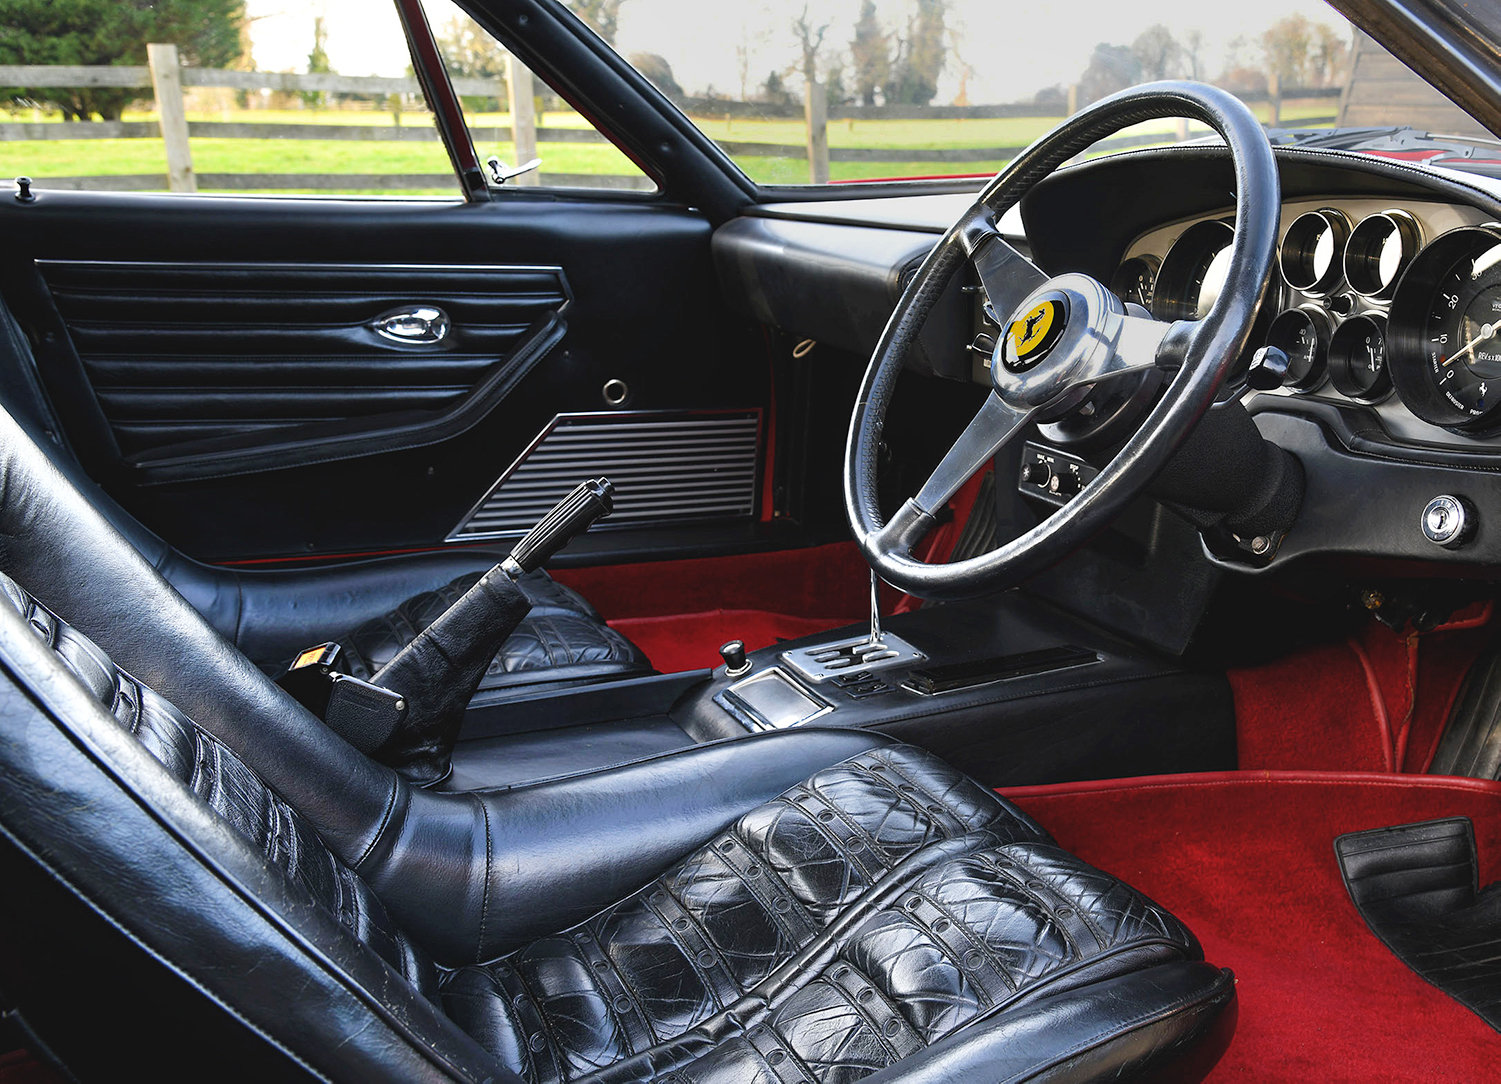 1974 Ferrari Daytona 365 GTB/4 RHD  SOLD (picture 4 of 6)